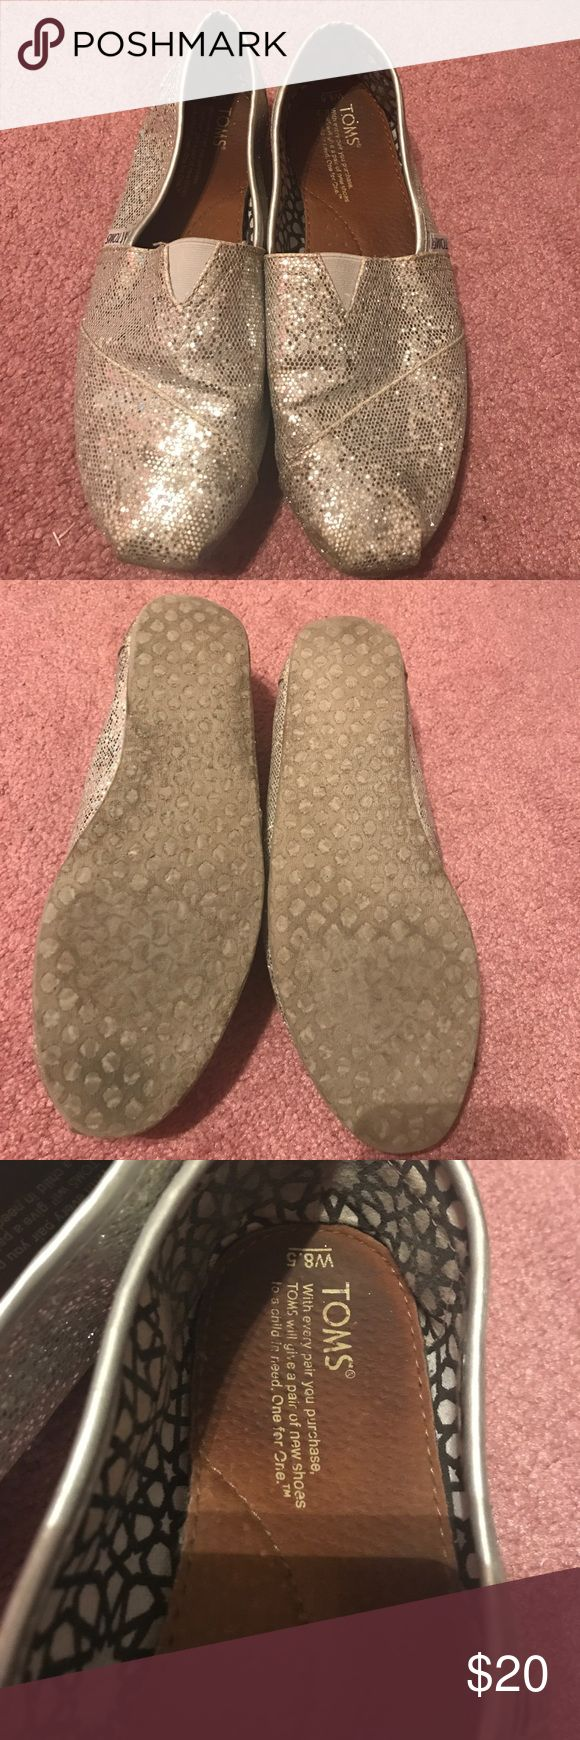 Silver glitter toms Barely worn, great condition! Toms Shoes Flats & Loafers